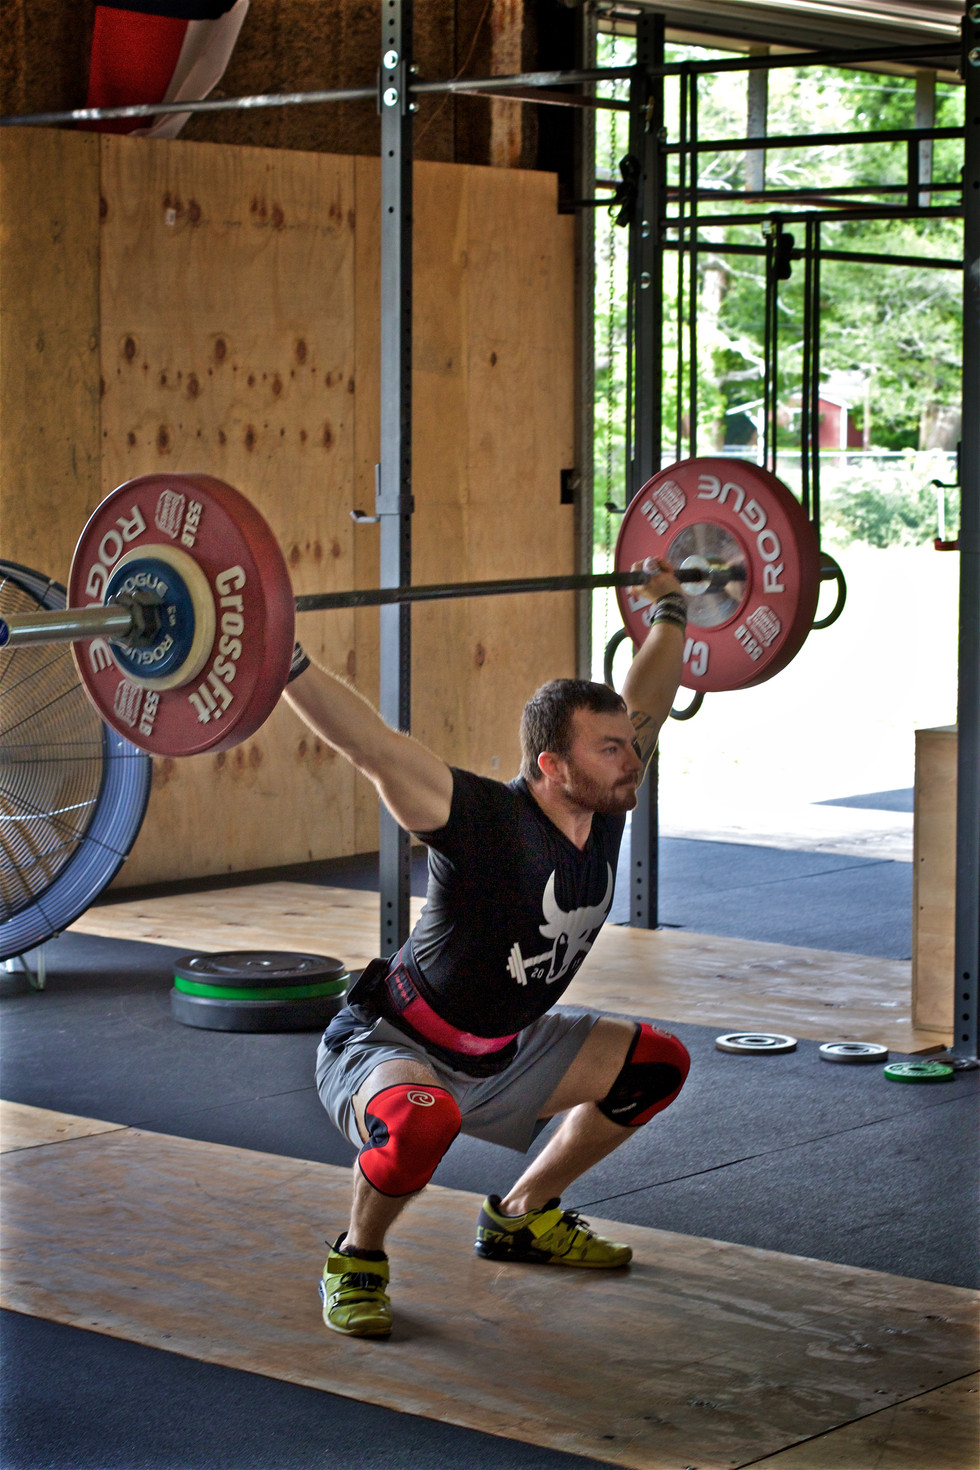 Finally! Pics from the Ante Up CrossFit novice olympic weightlifting meet